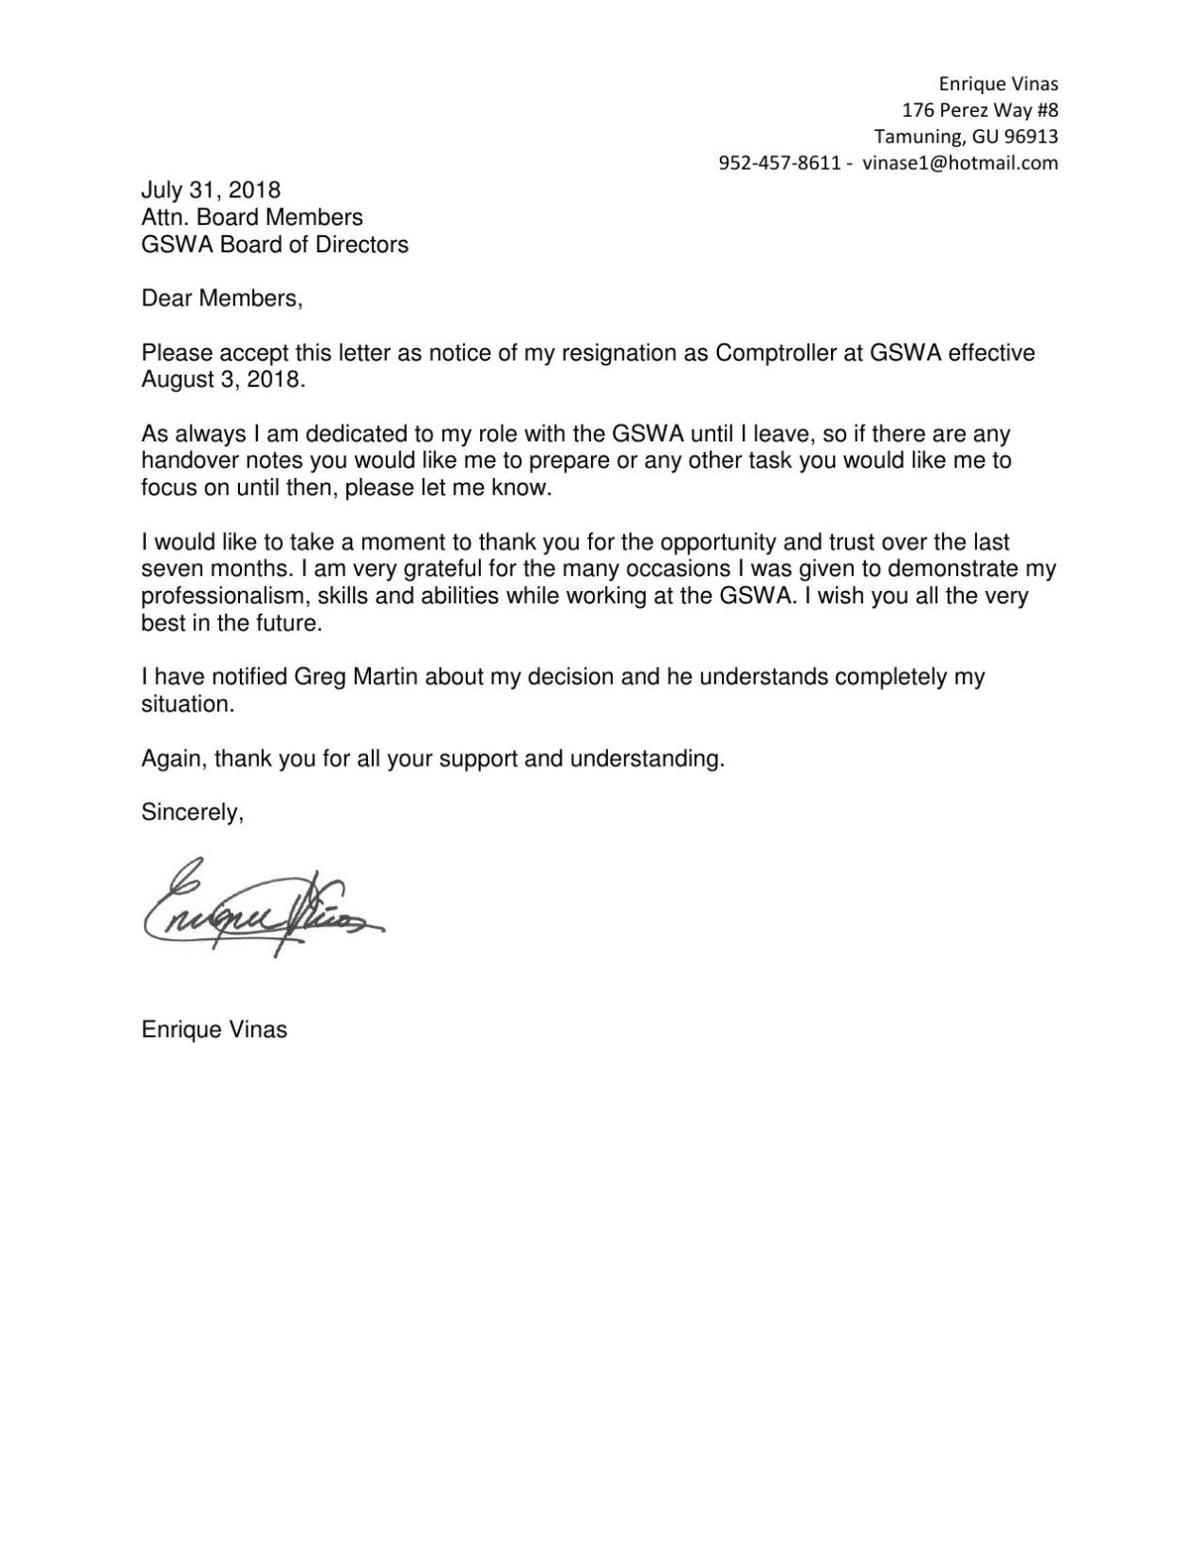 Resign From Board Of Directors Letter from bloximages.newyork1.vip.townnews.com